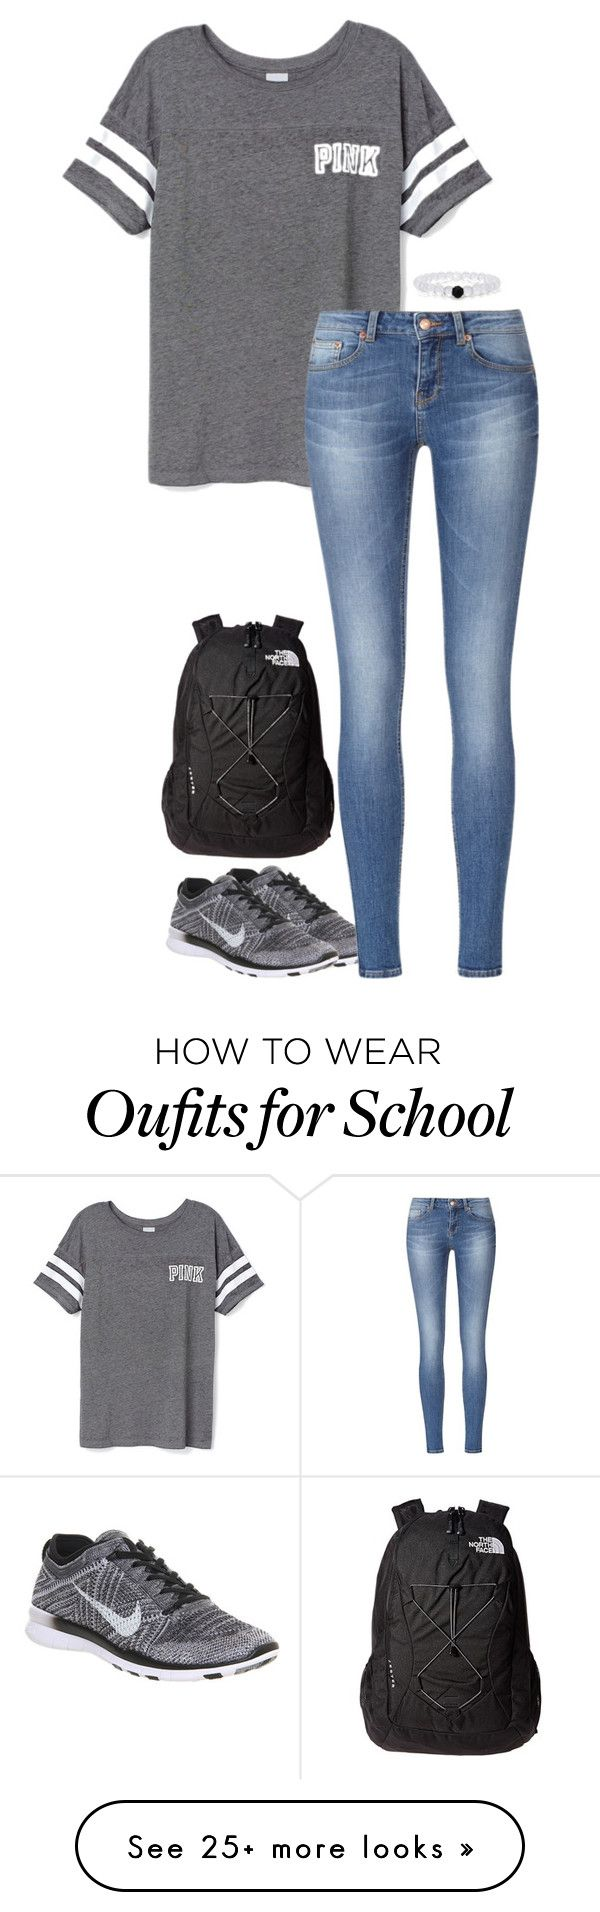 """ by sassy-and-southern on Polyvore featuring moda, Victoria's Secret PINK, NIKE y The North Face"